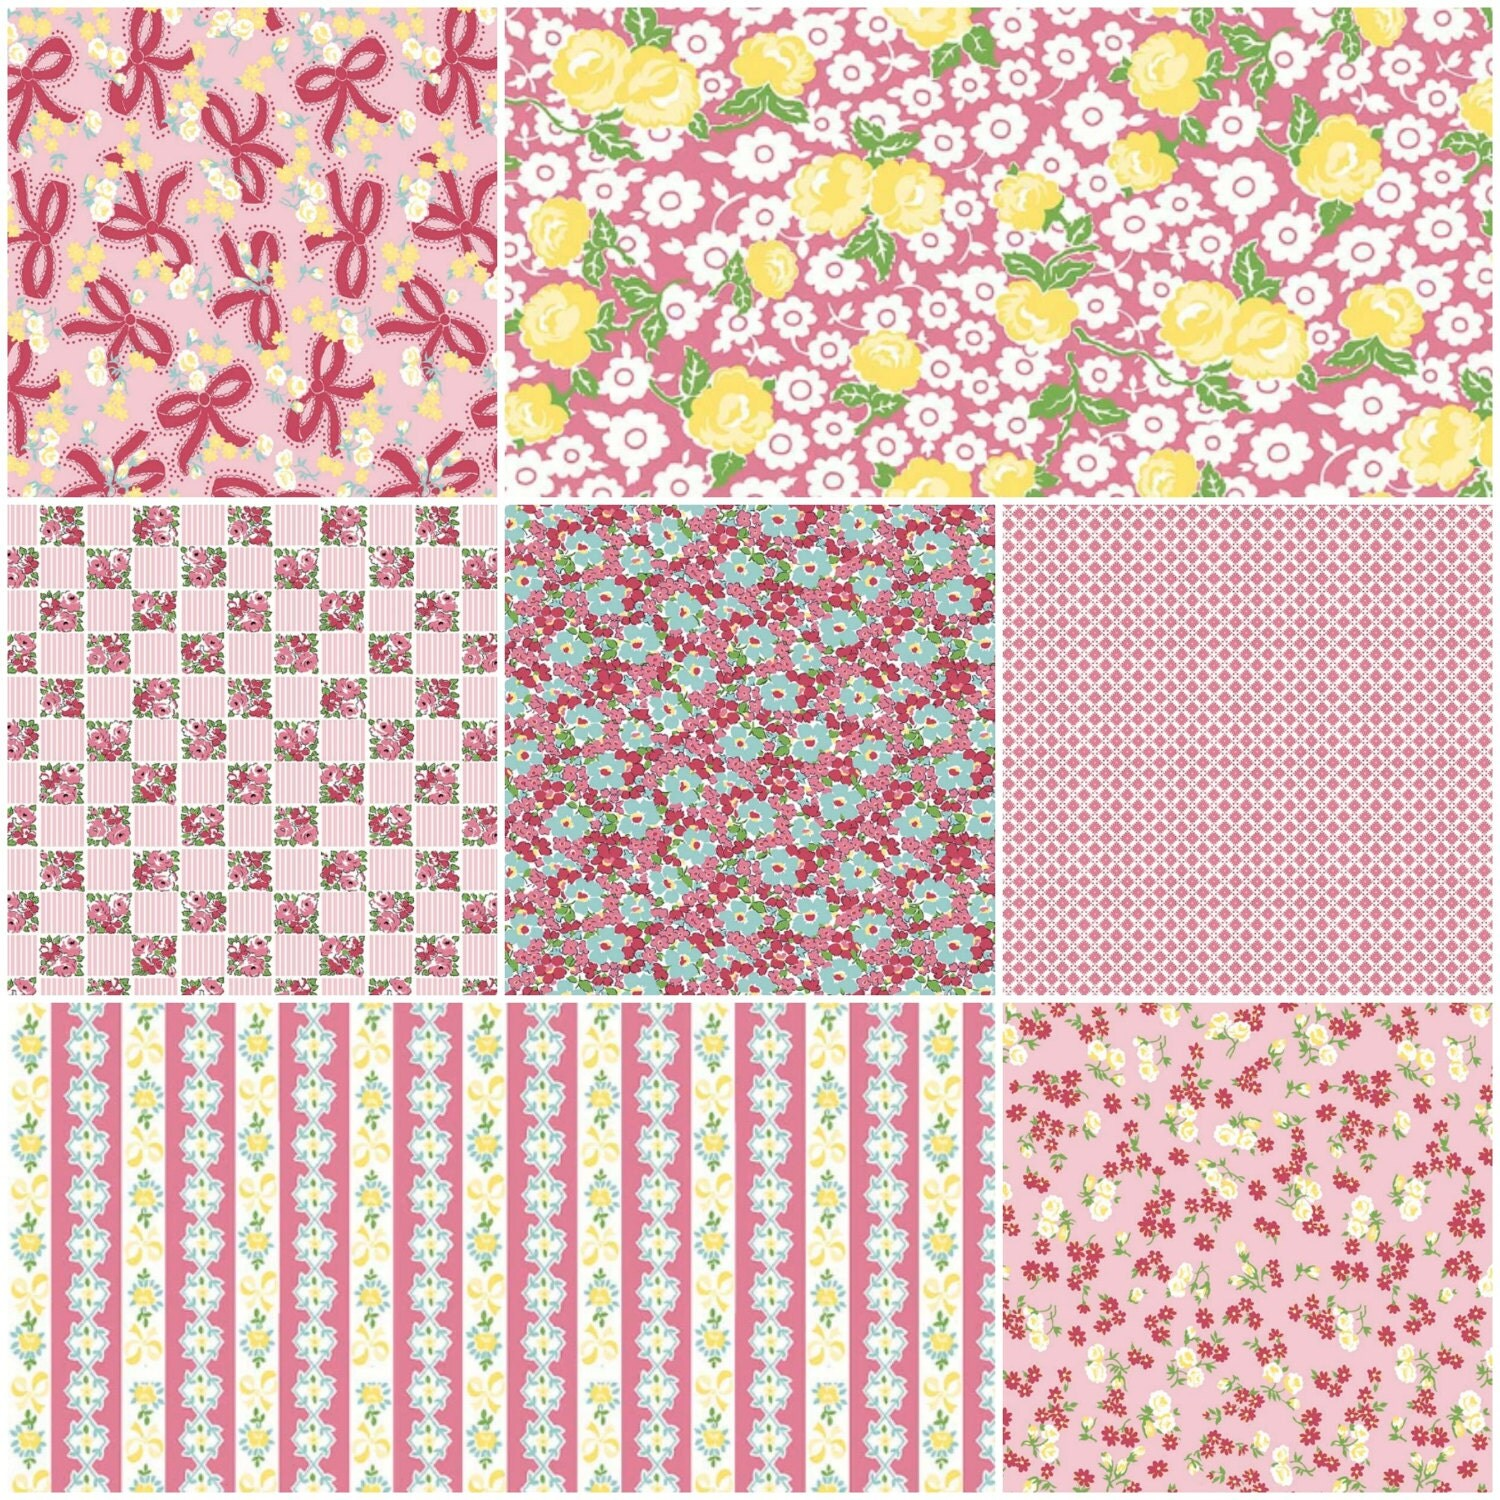 Dainty Darling Fabric by Lindsay Wilkes for Riley Blake Designs - Pink Colorway - 7 yards